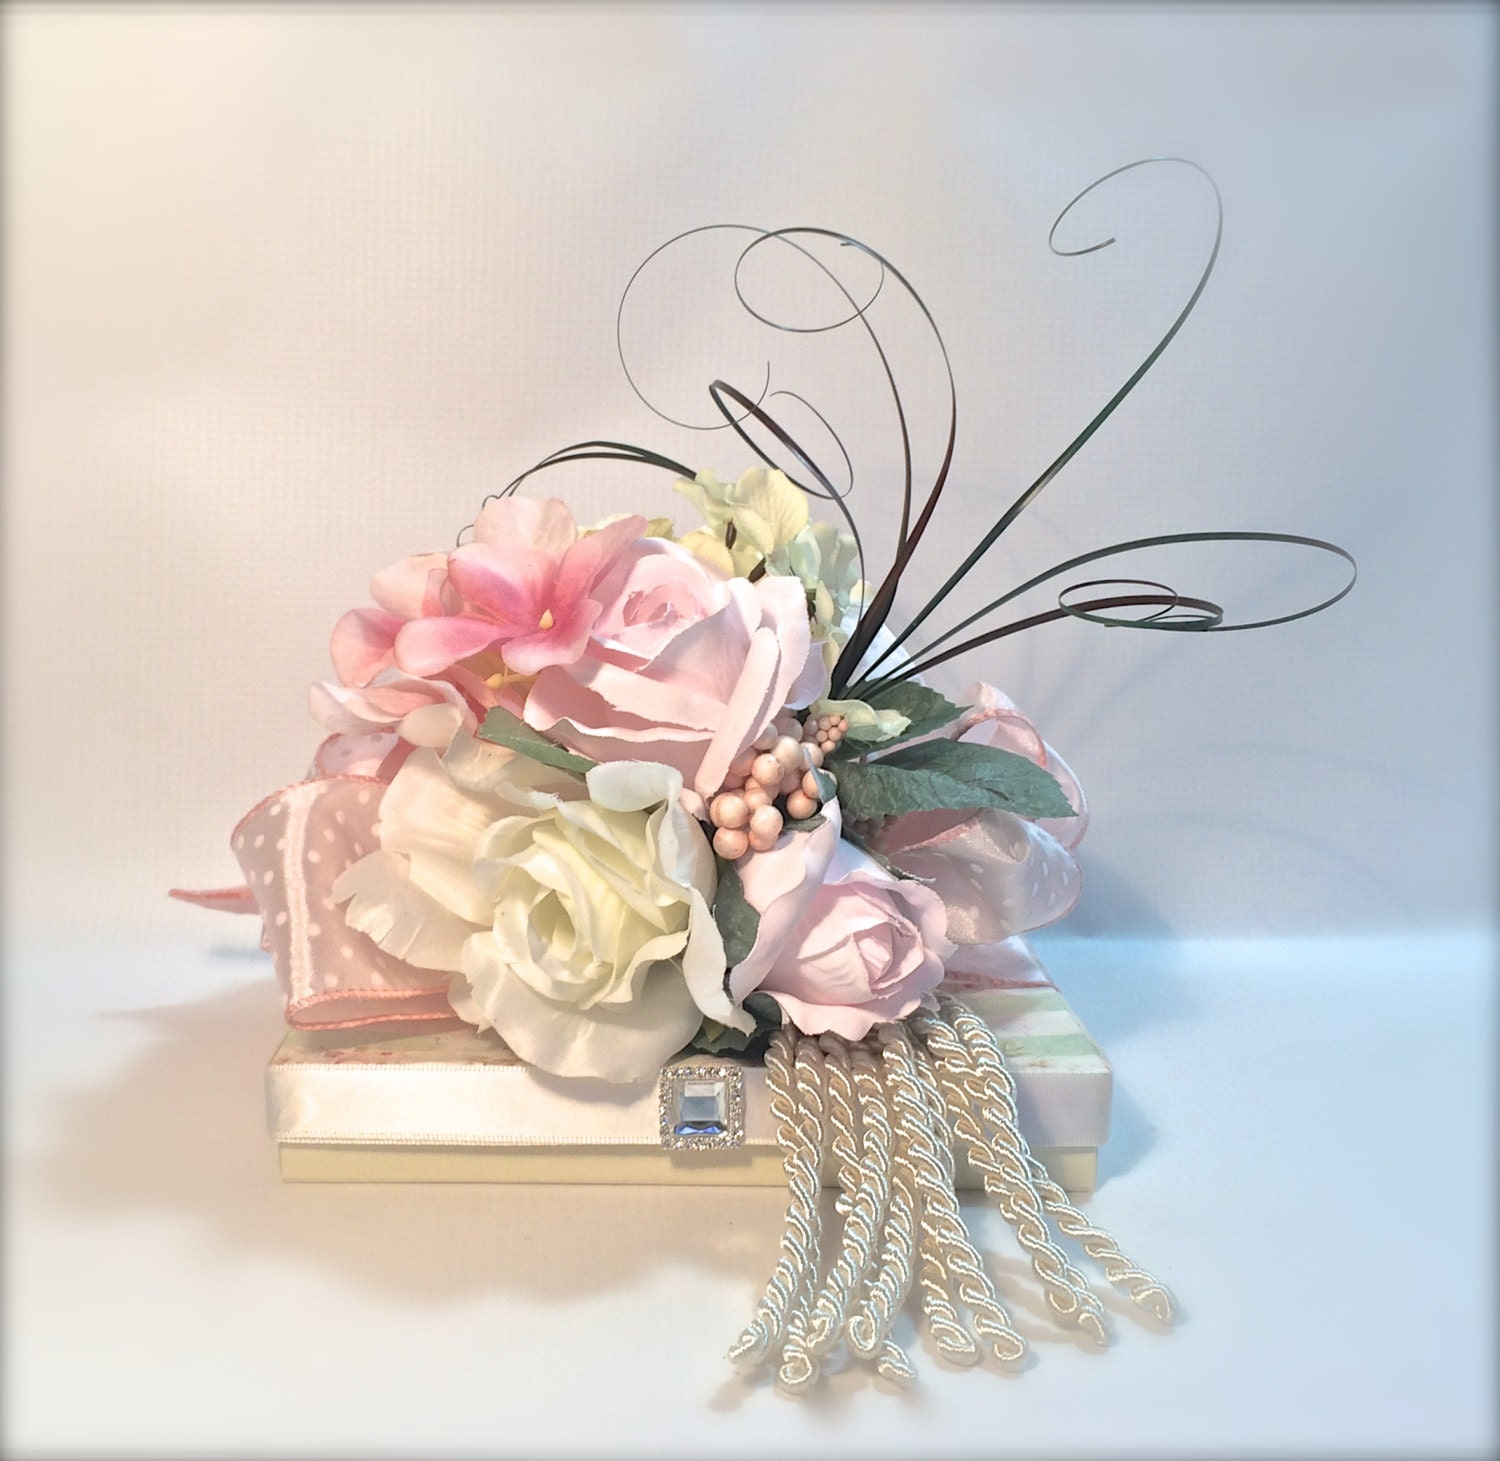 Wedding Day Gift Jewelry : Shabby Chic Wedding Favors Jewelry Gift Cards Mothers Day